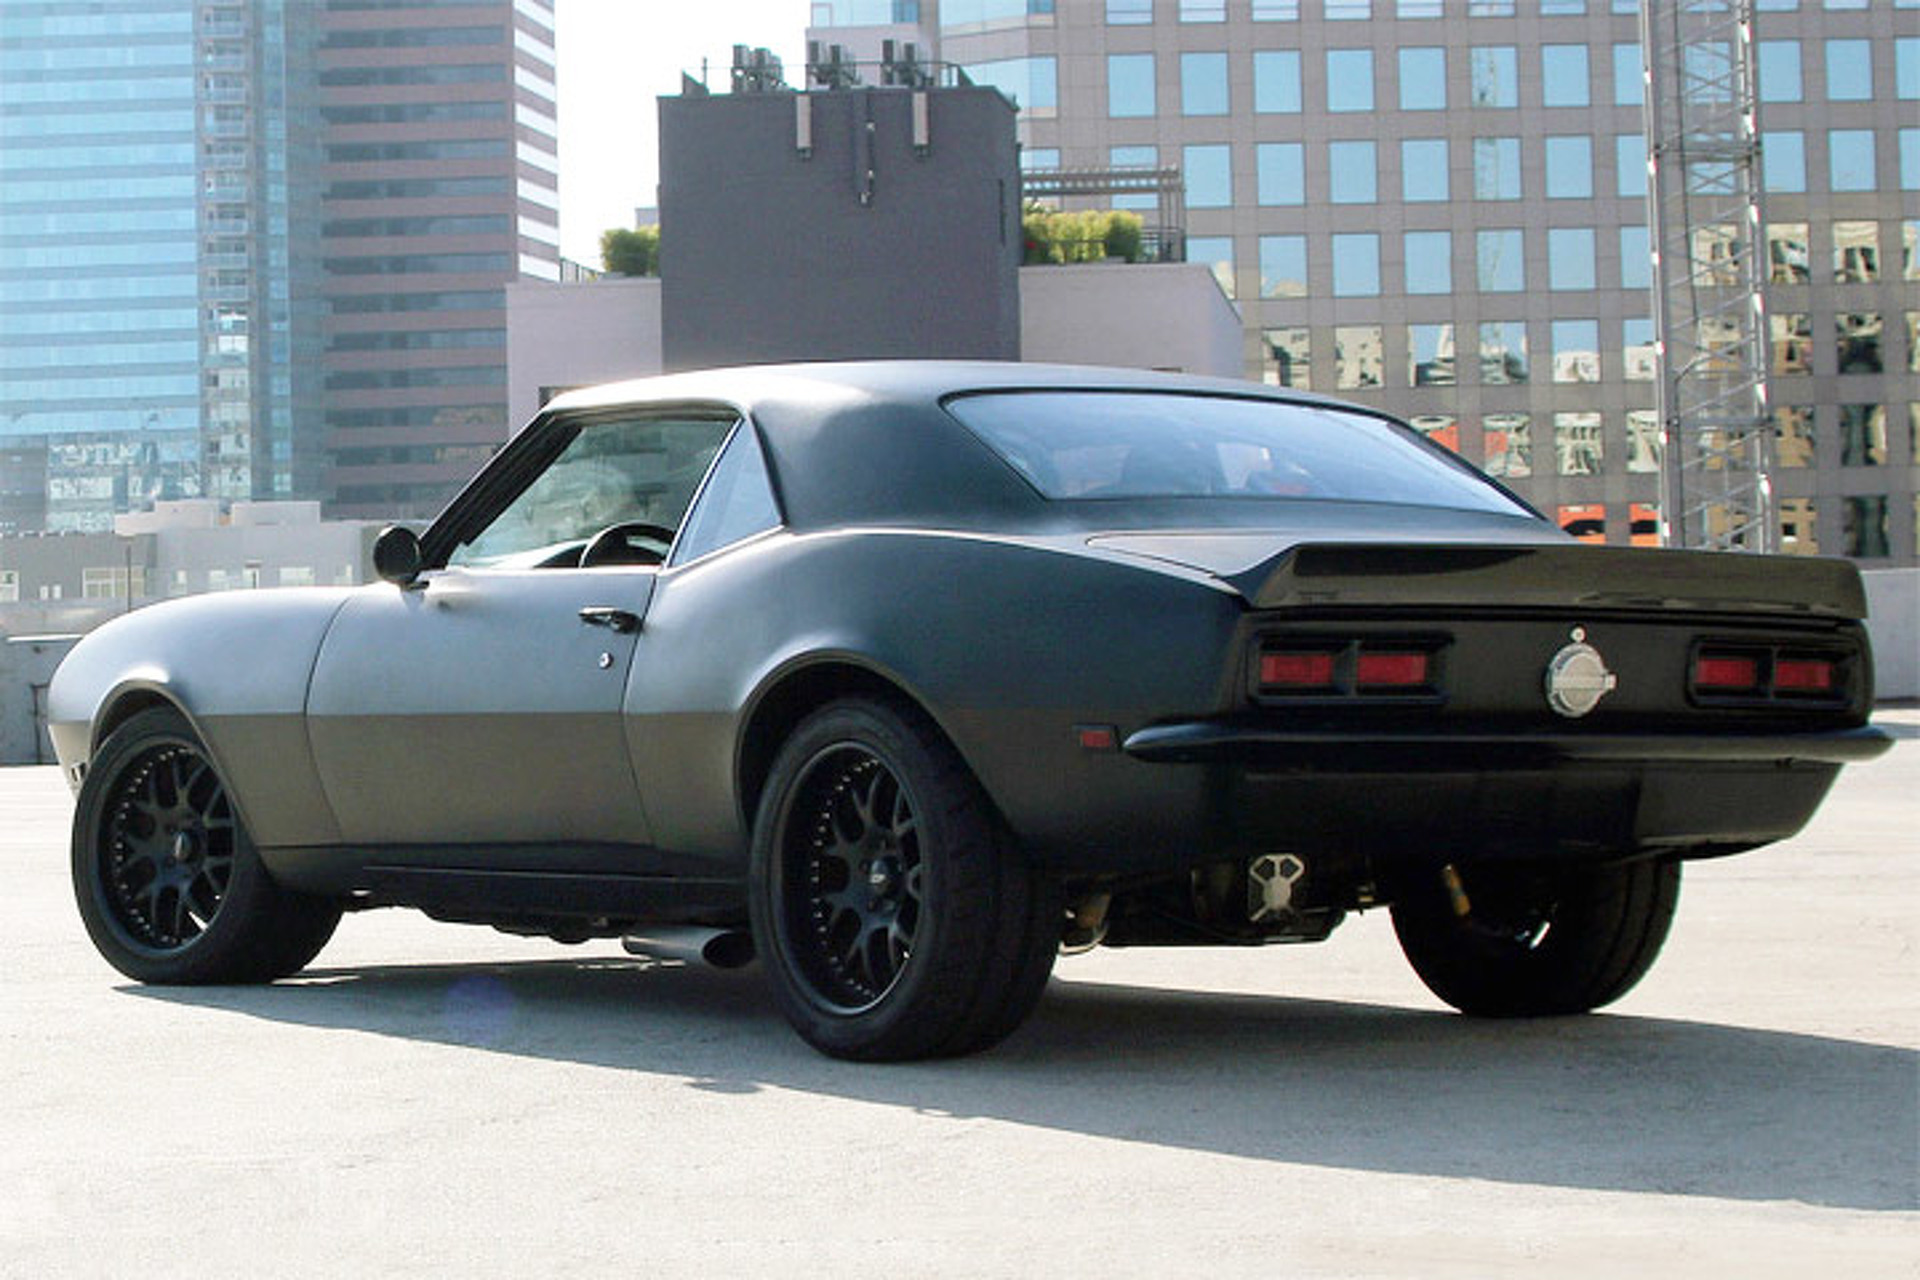 This Sinister '68 Camaro is a Lesson in Intimidation Factor